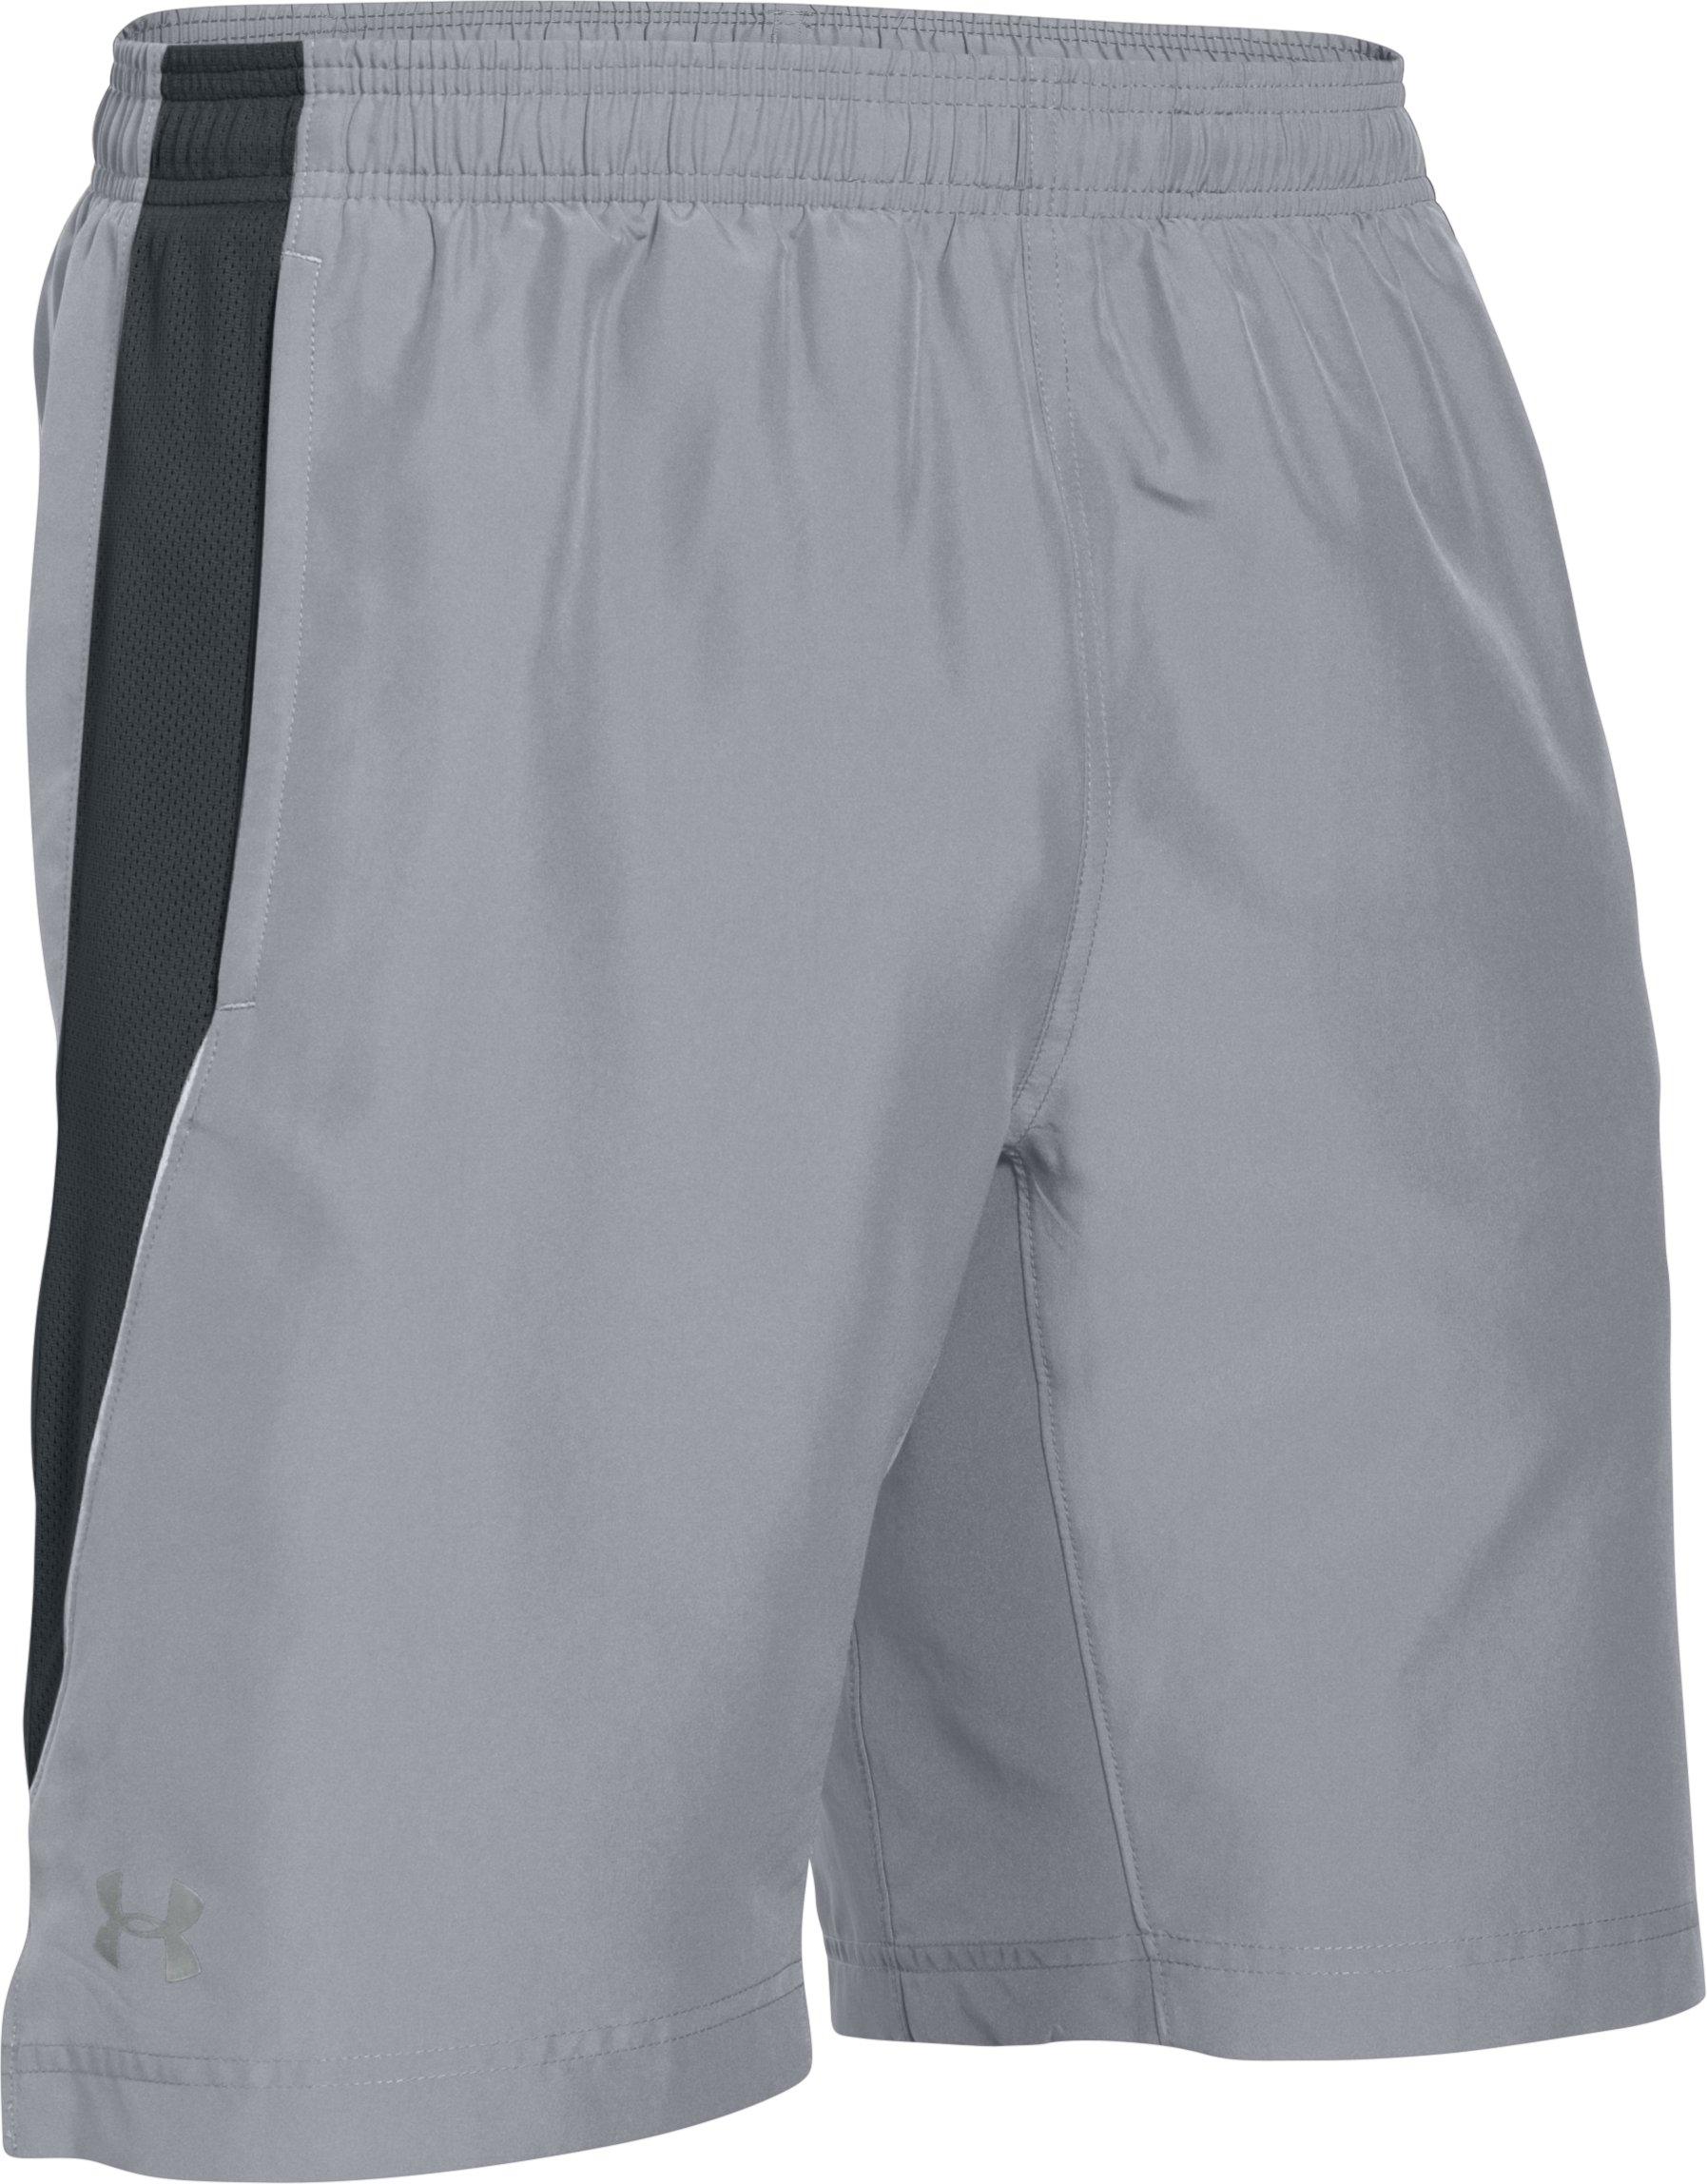 "Men's UA Launch Run 9"" Shorts, Graphite"